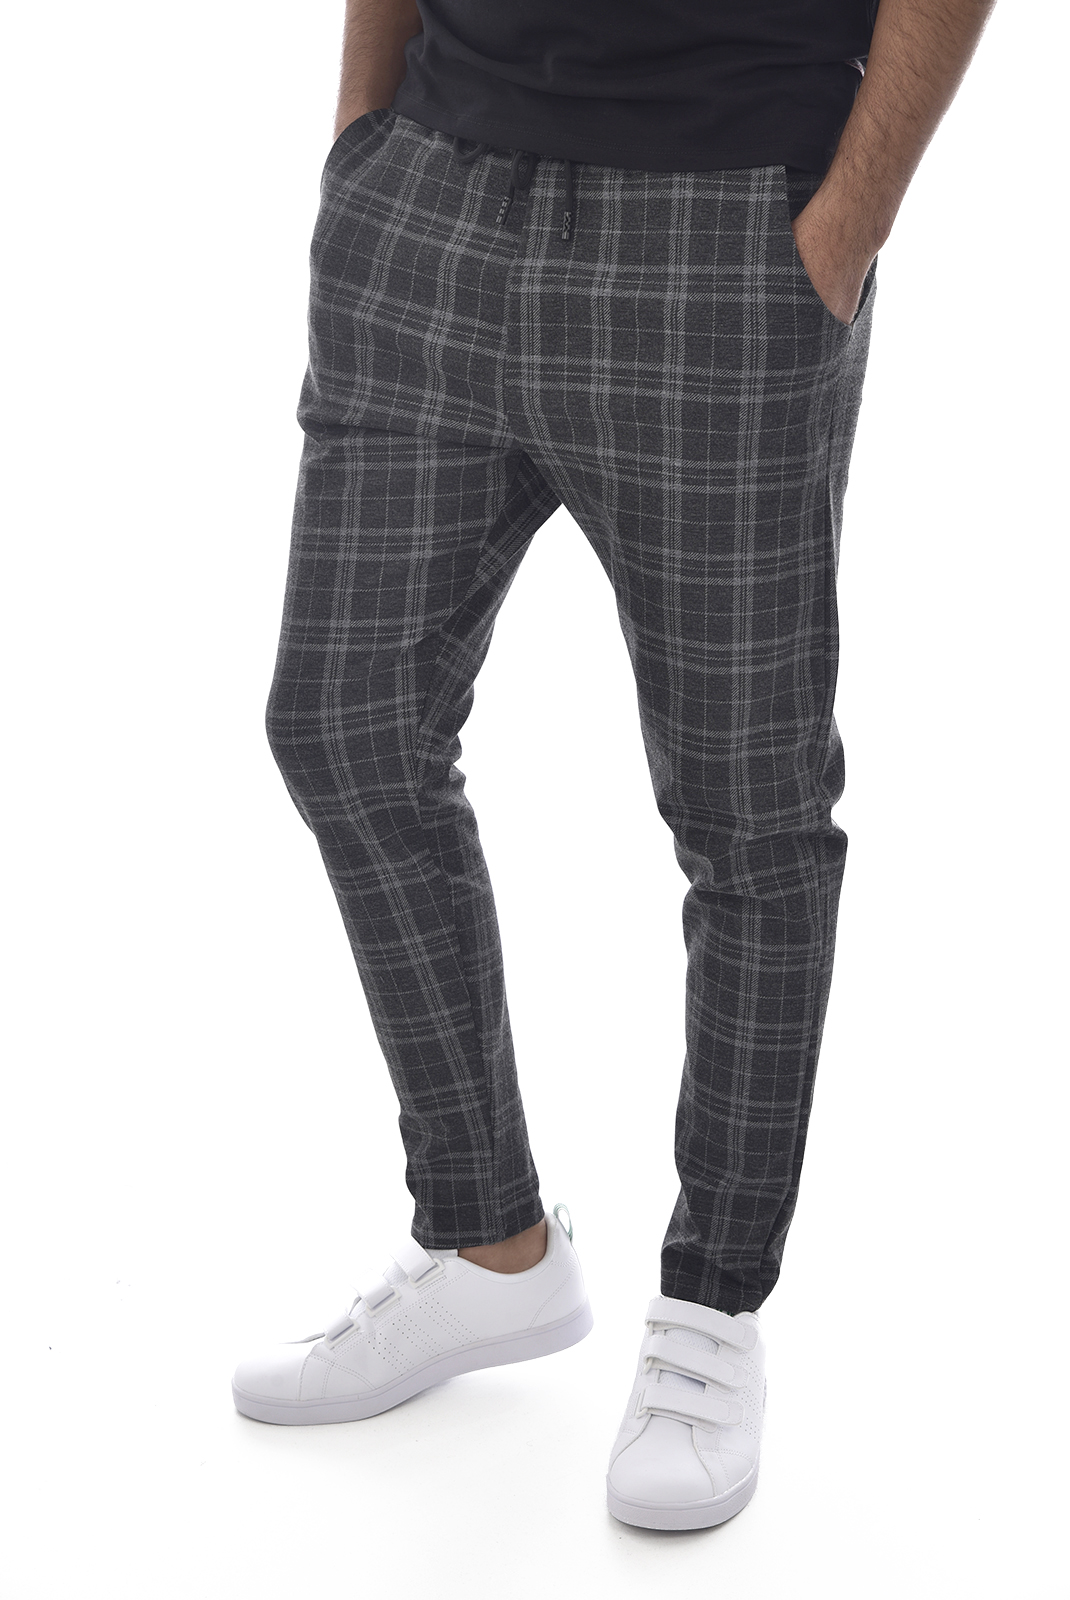 Pantalons sport/streetwear  Made in Italy TM0003.12 GRIS ANTHRACITE GRIS CLAIR